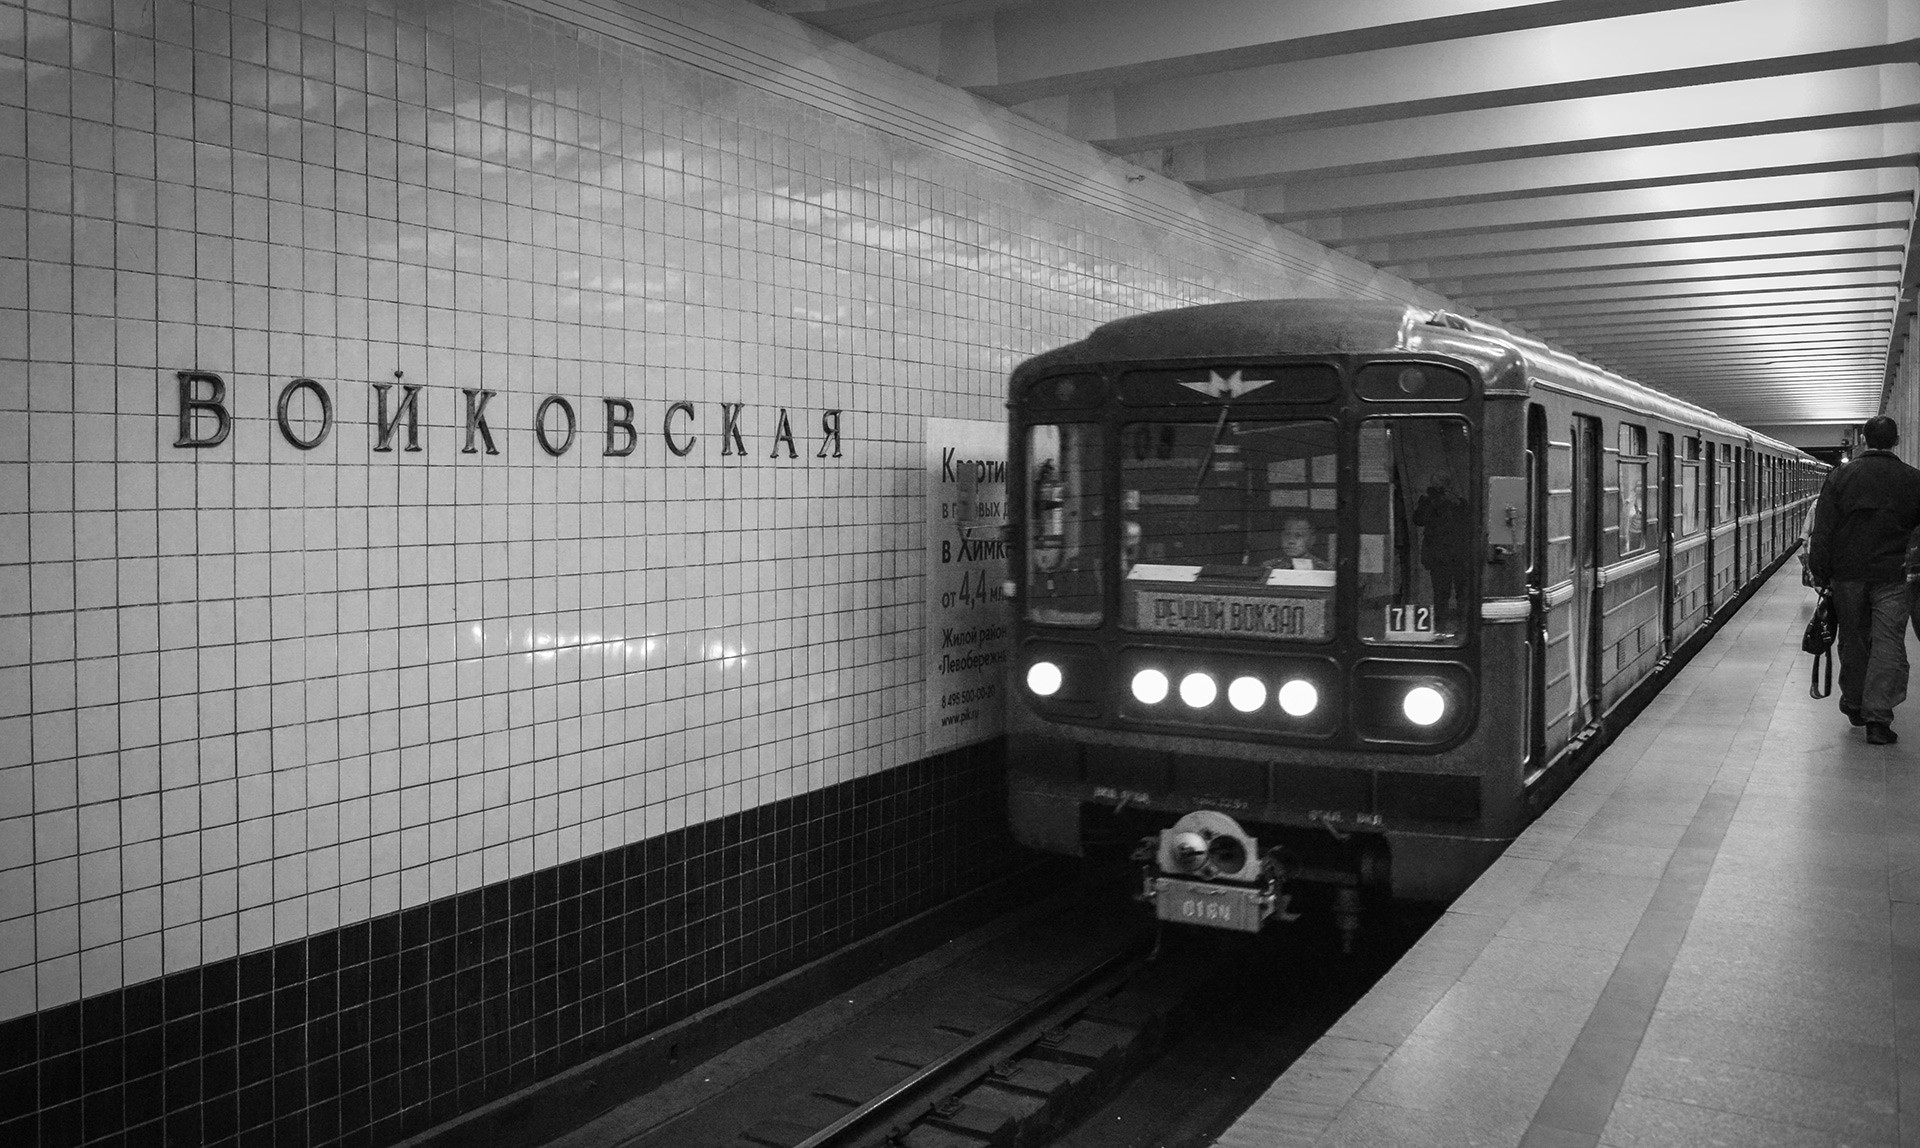 A train arrives at Voykovskaya metro station in Moscow. There is nothing special about the station except for its controversial name.